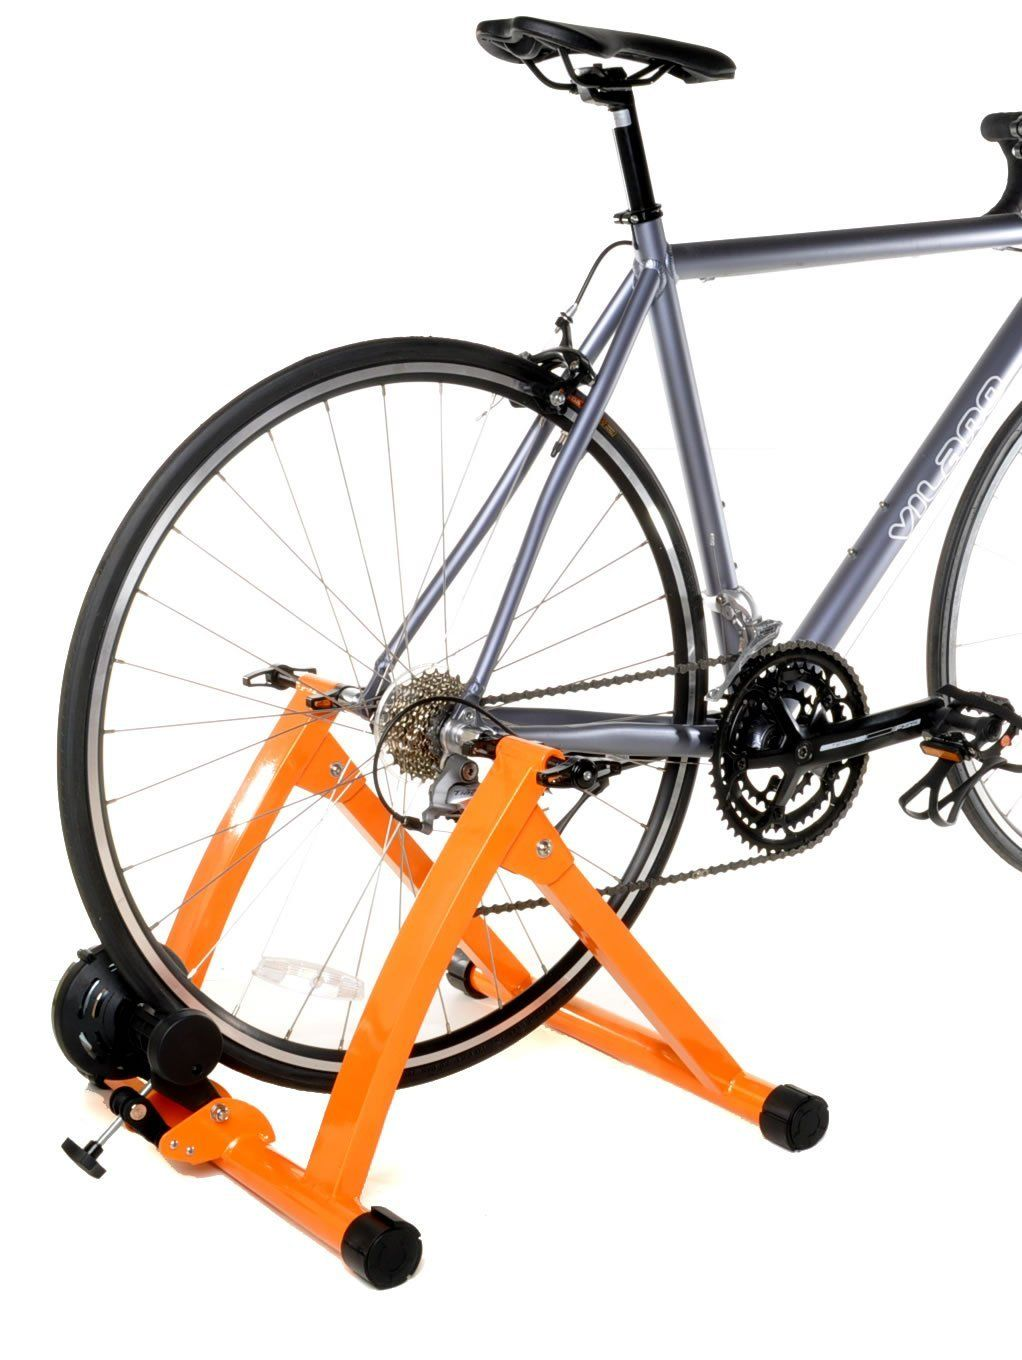 Portable Indoor Bike Trainer Stand Magnetic Resistance Bicycle Riding Exercise